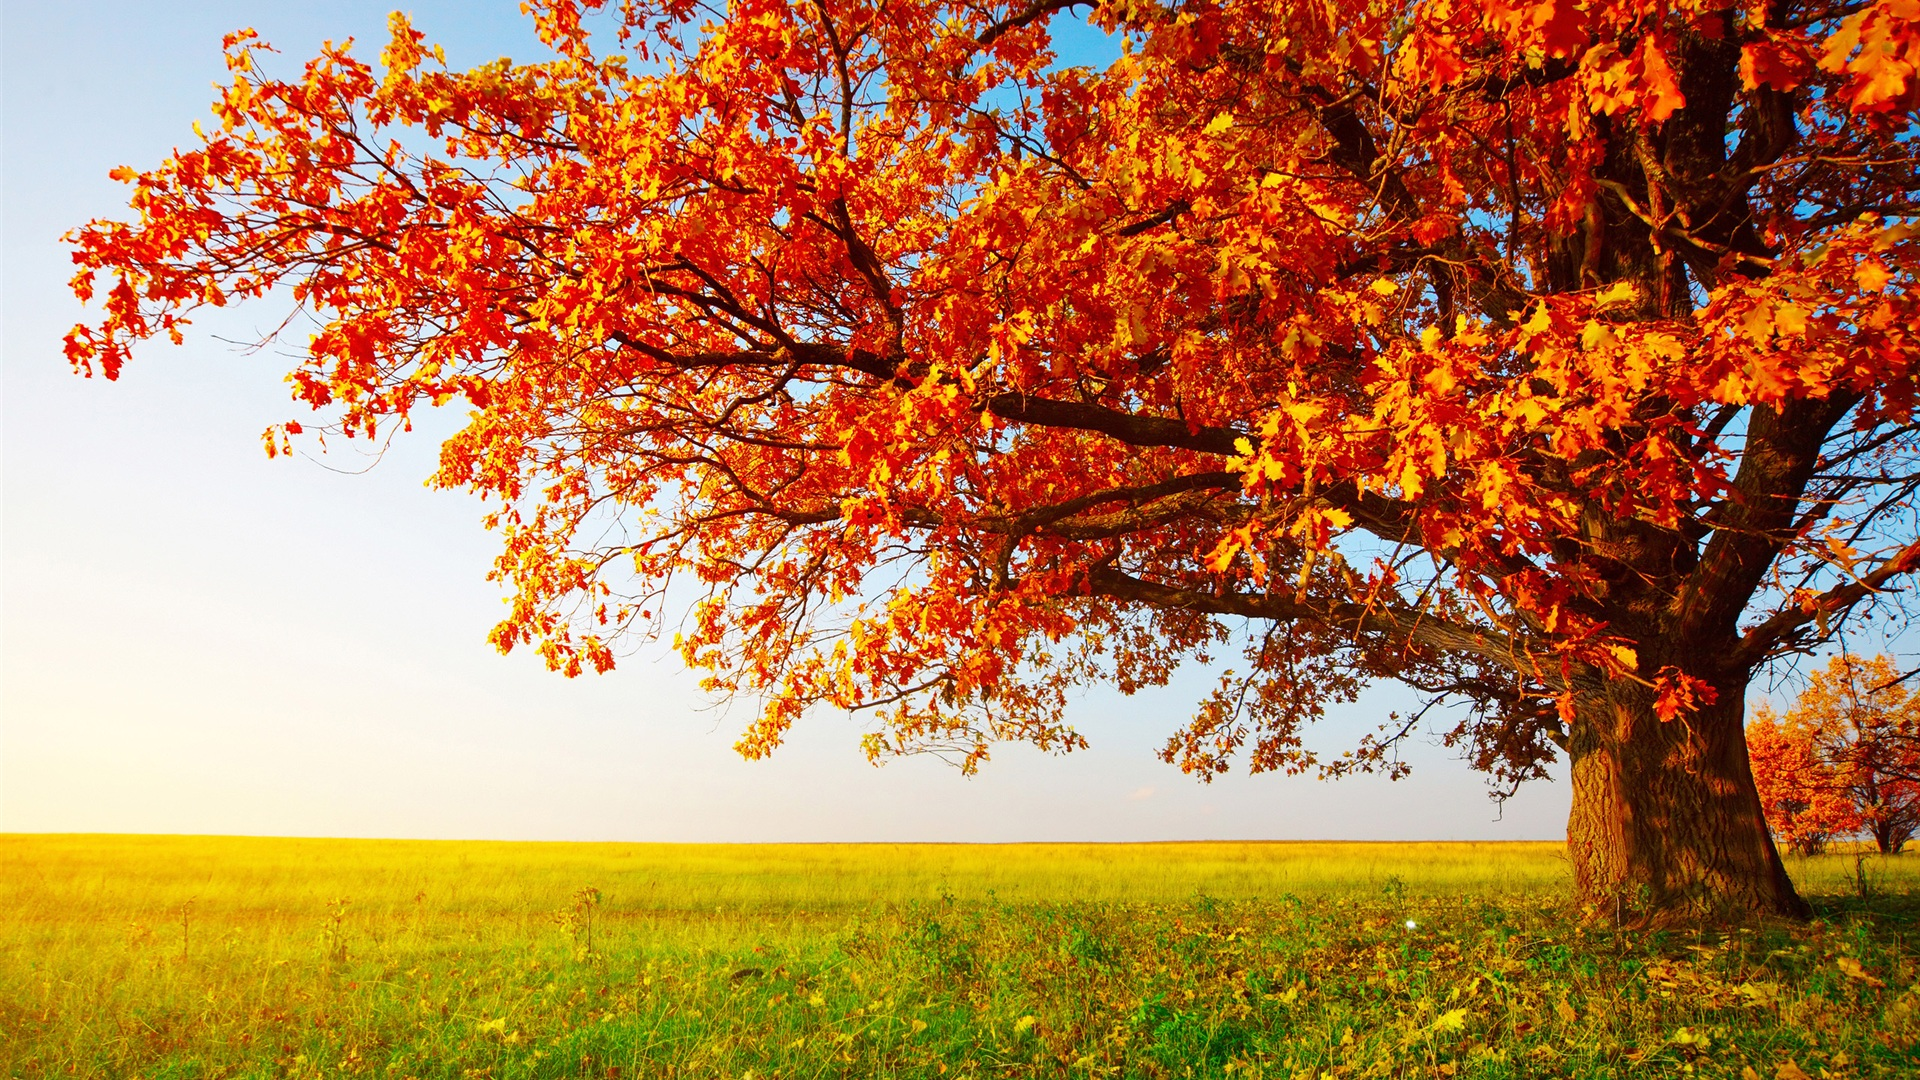 Autumn Wallpapers Hd Desktop Backgrounds Images And Pictures 1920x1080